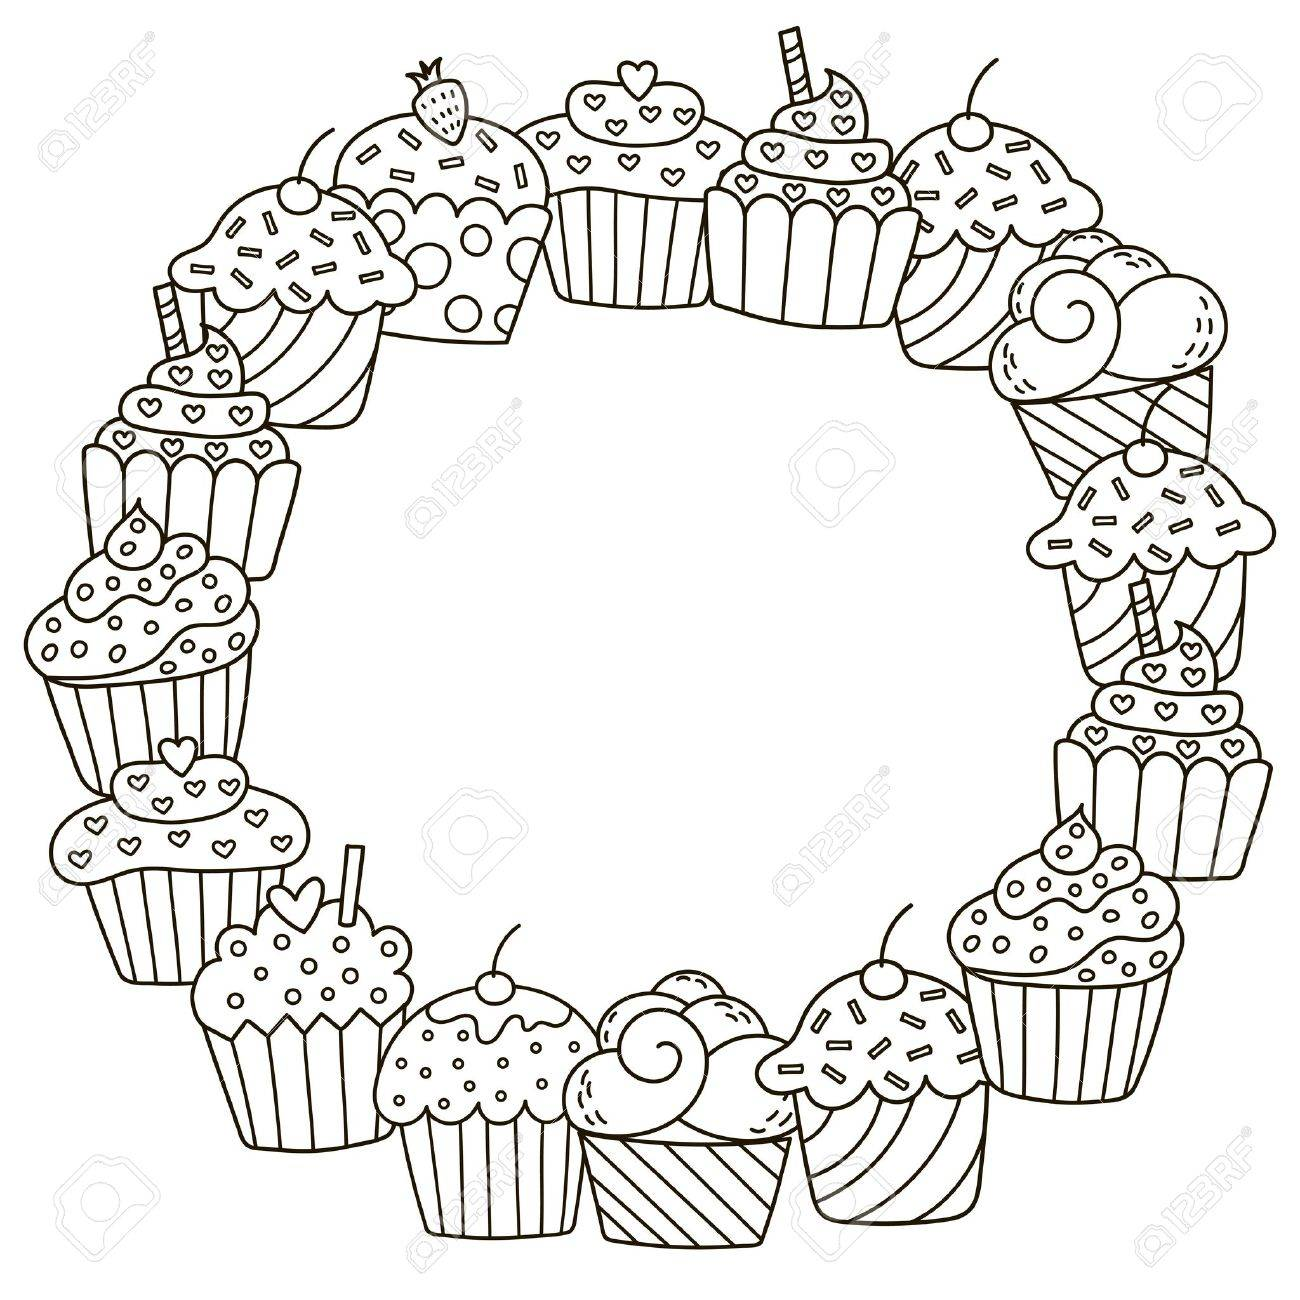 Black And White Frame With Cute Cupcakes For Coloring Book Royalty ...